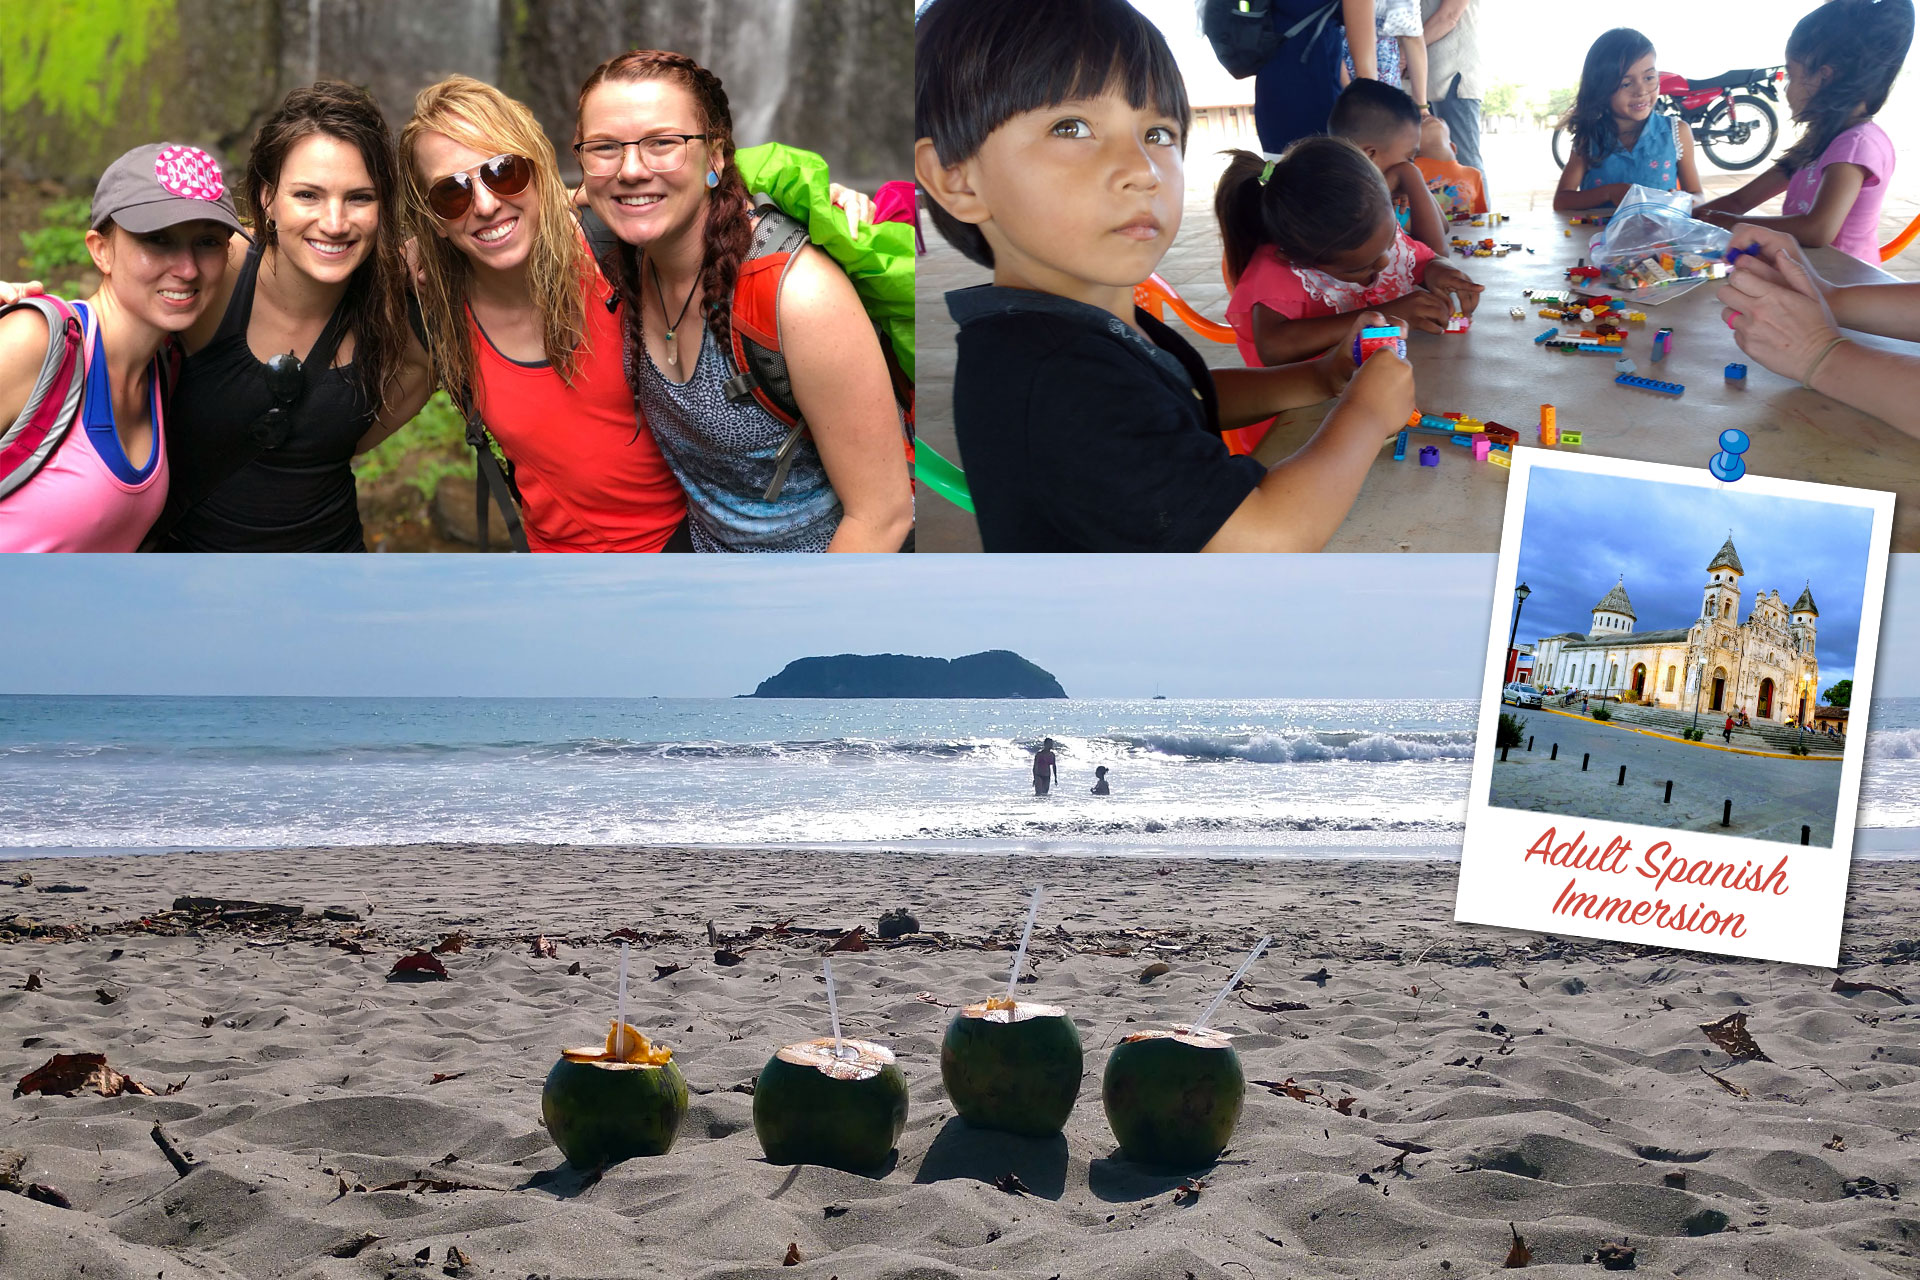 Spanish Immersion for Adults in Costa Rica, Ecuador & Nicaragua